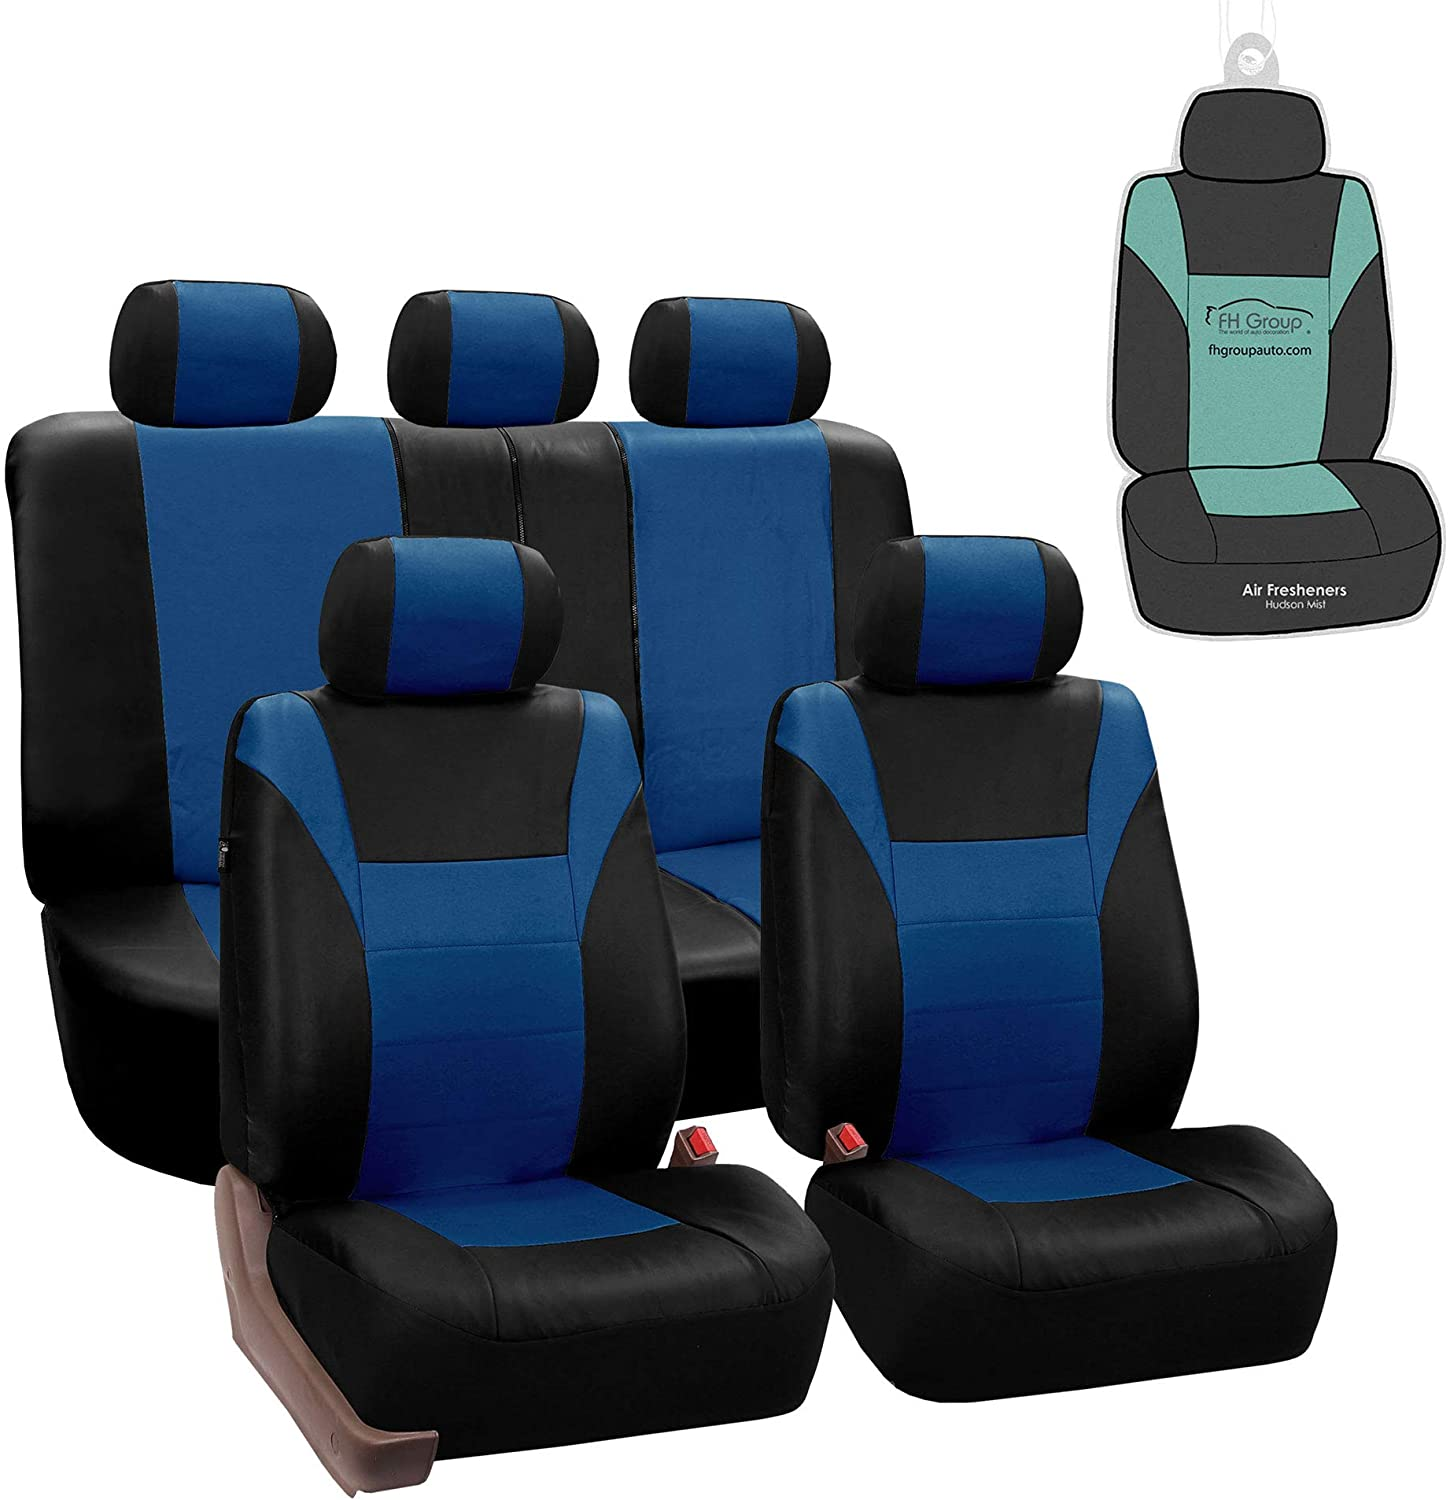 FH Group PU003115 Racing PU Leather Seat Covers (Blue) Full Set with Gift - Universal Fit for Trucks, SUVs, and Vans